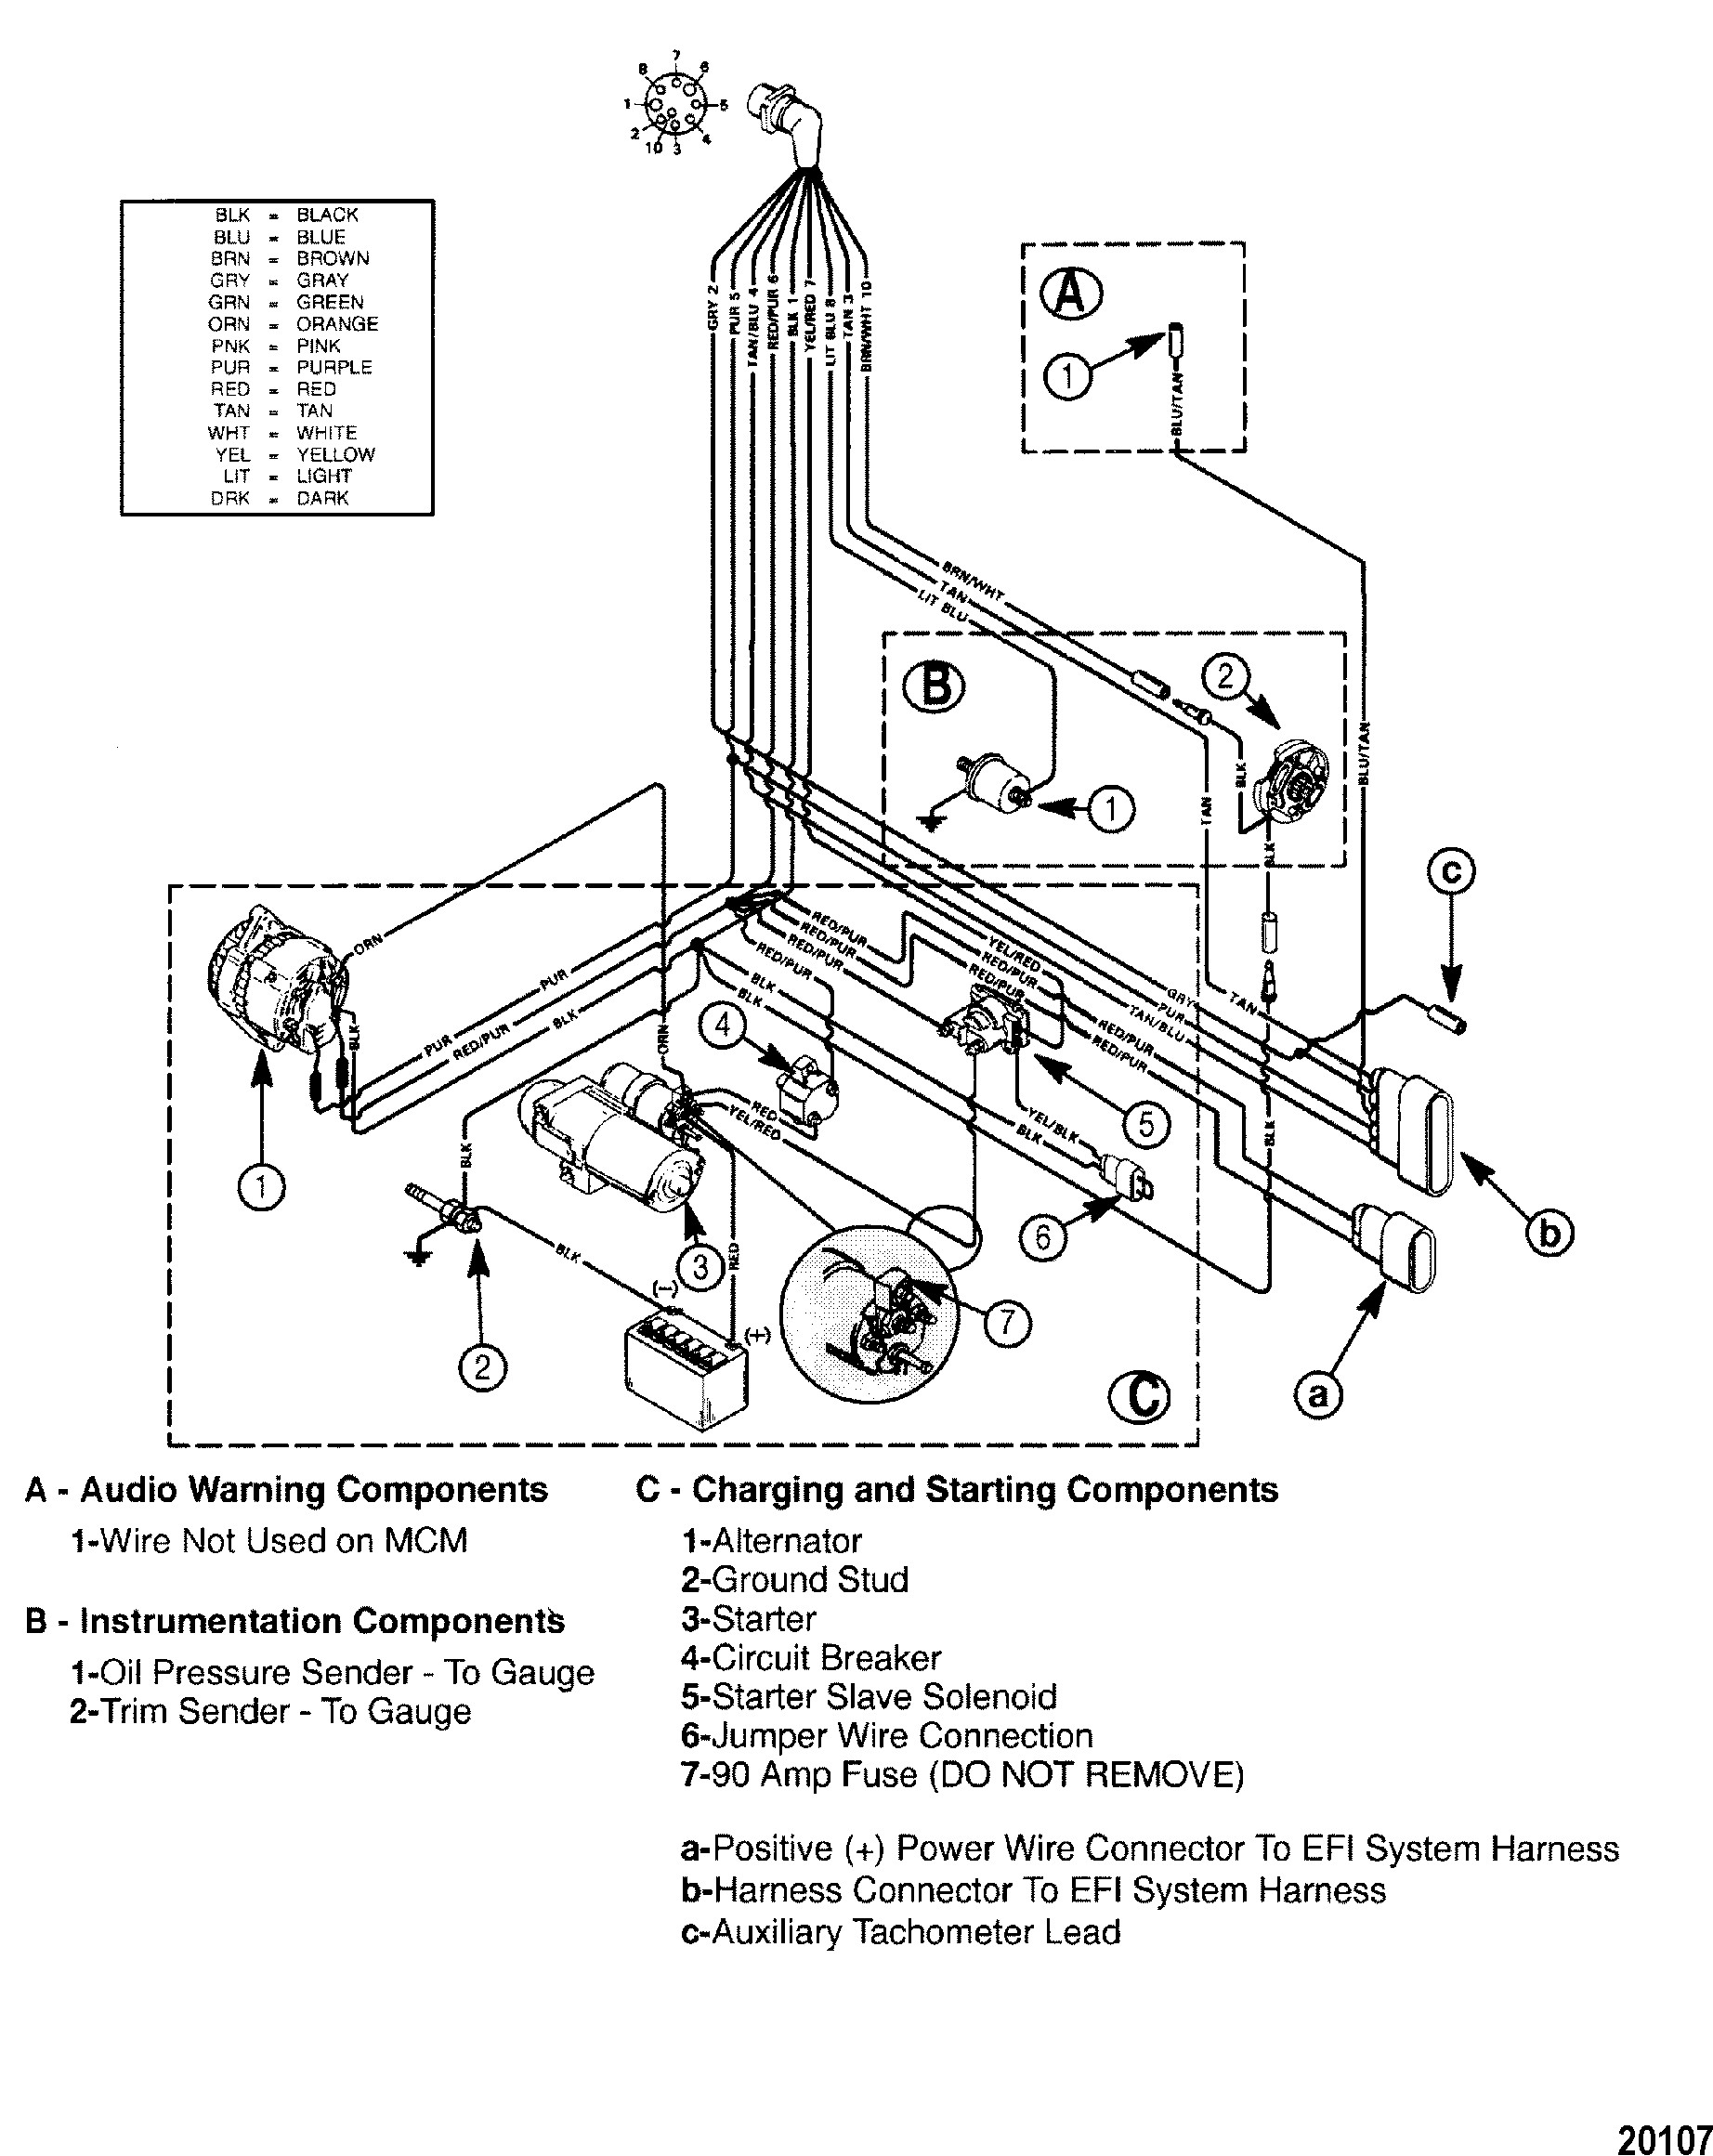 2000 jaguar xj8 wiring diagram